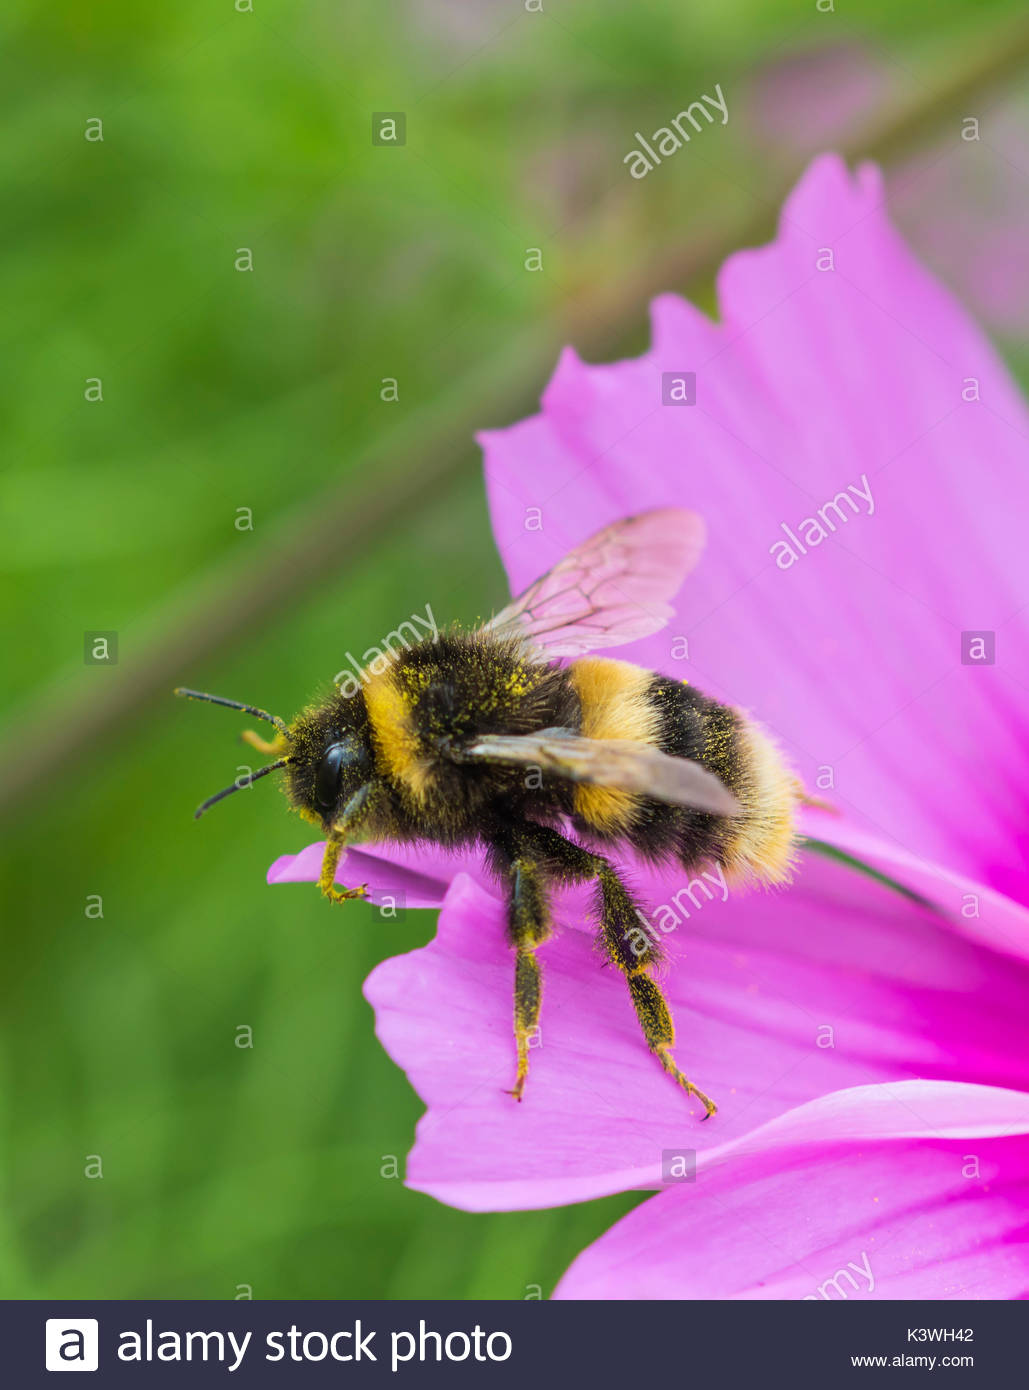 Bumblebee macro portrait with copy space. Bombus terrestris (Buff Tailed Bumblebee) on a Cosmos bipinnatus flower in Summer in West Sussex, UK. - Stock Image